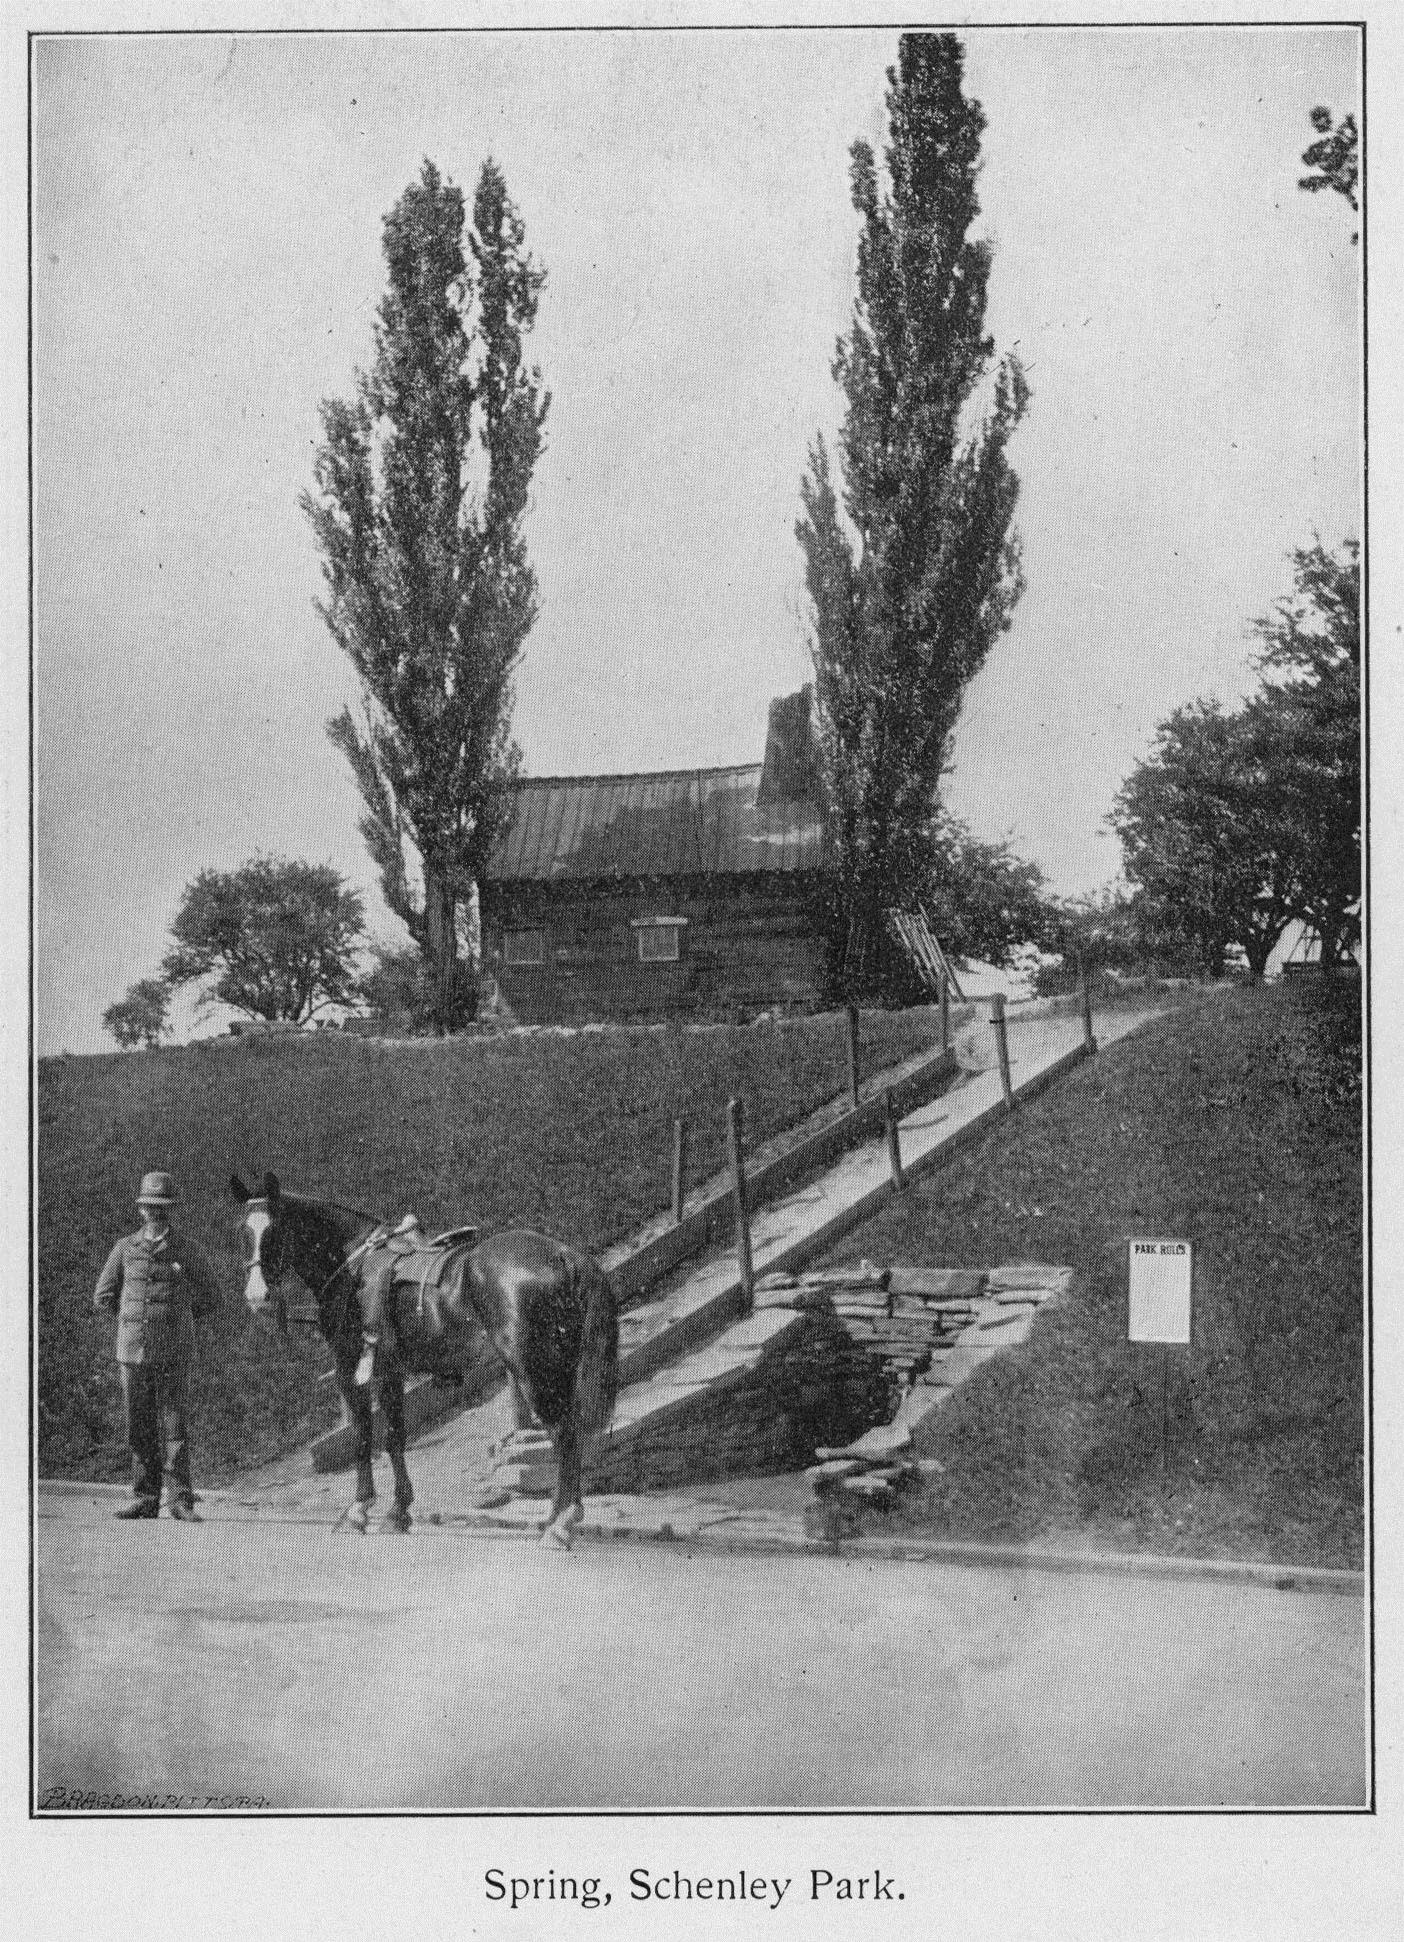 photo from 1900 of Neill Log House on a hill with horse and man at the bottom of the hill